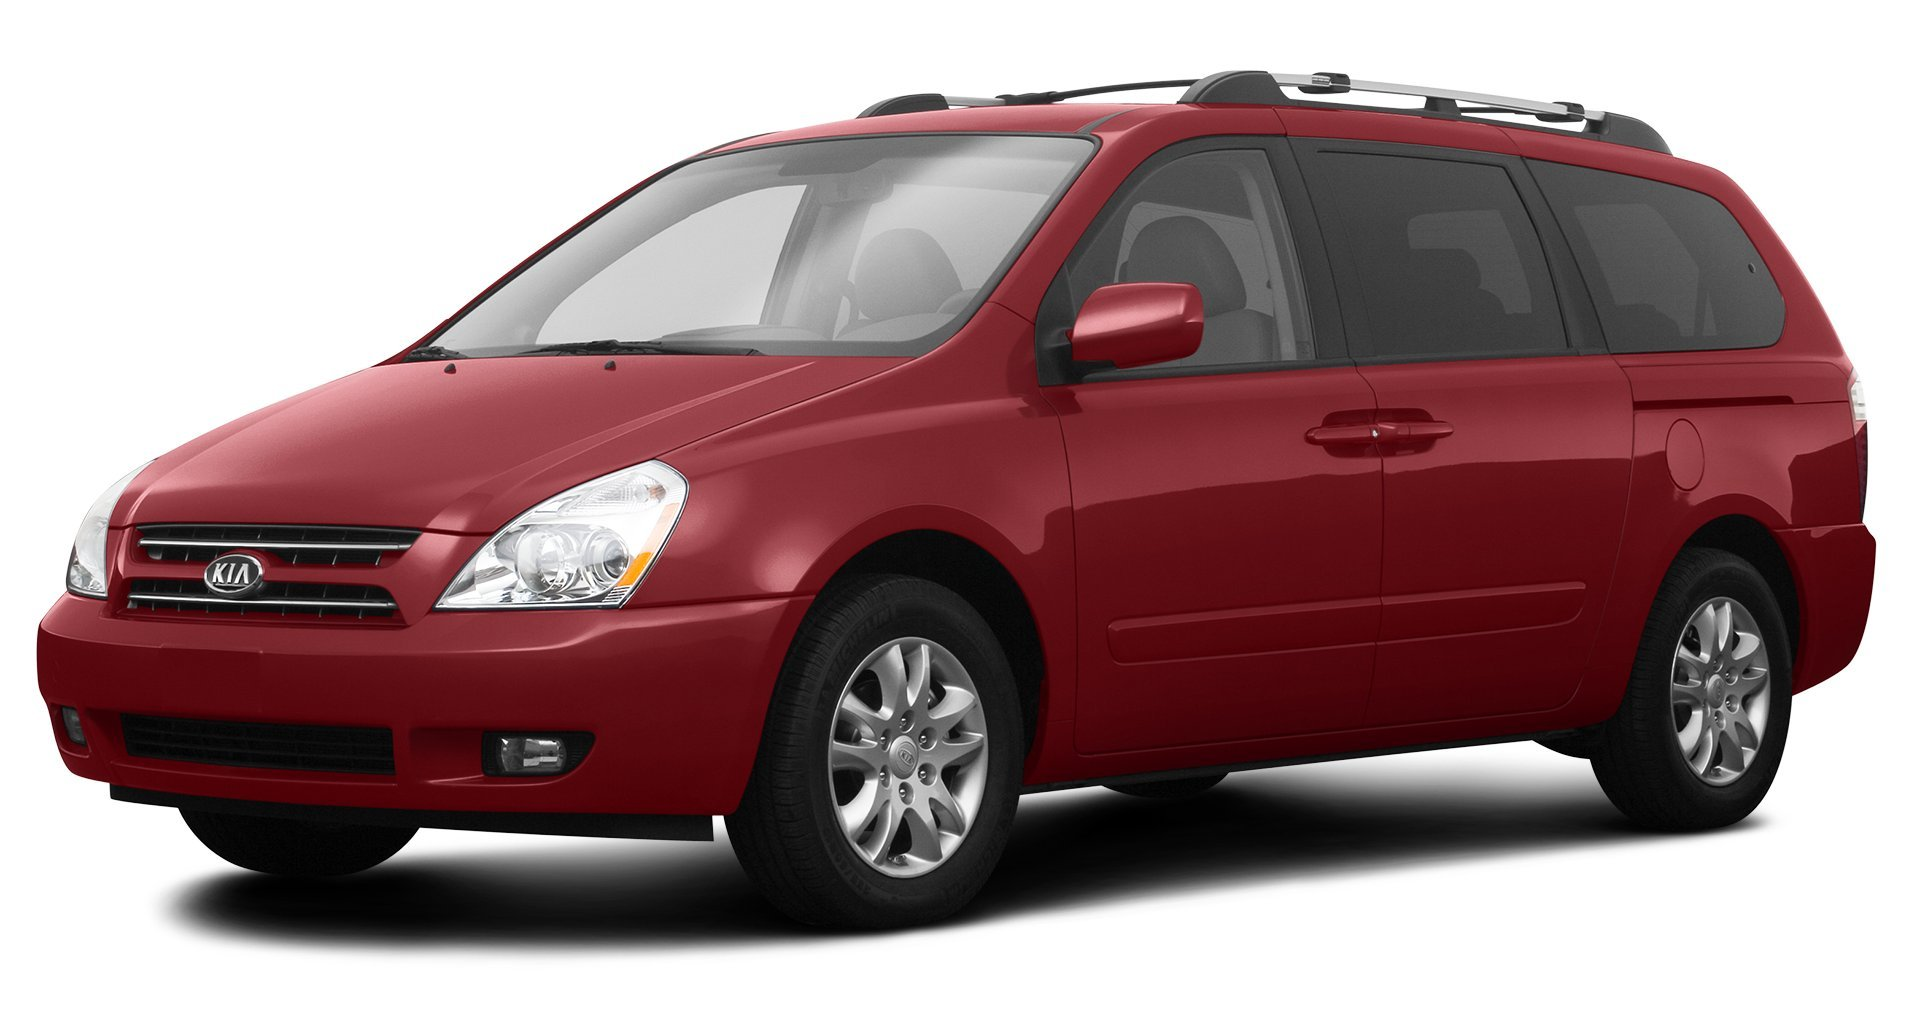 2008 chrysler town country reviews images and specs vehicles. Black Bedroom Furniture Sets. Home Design Ideas